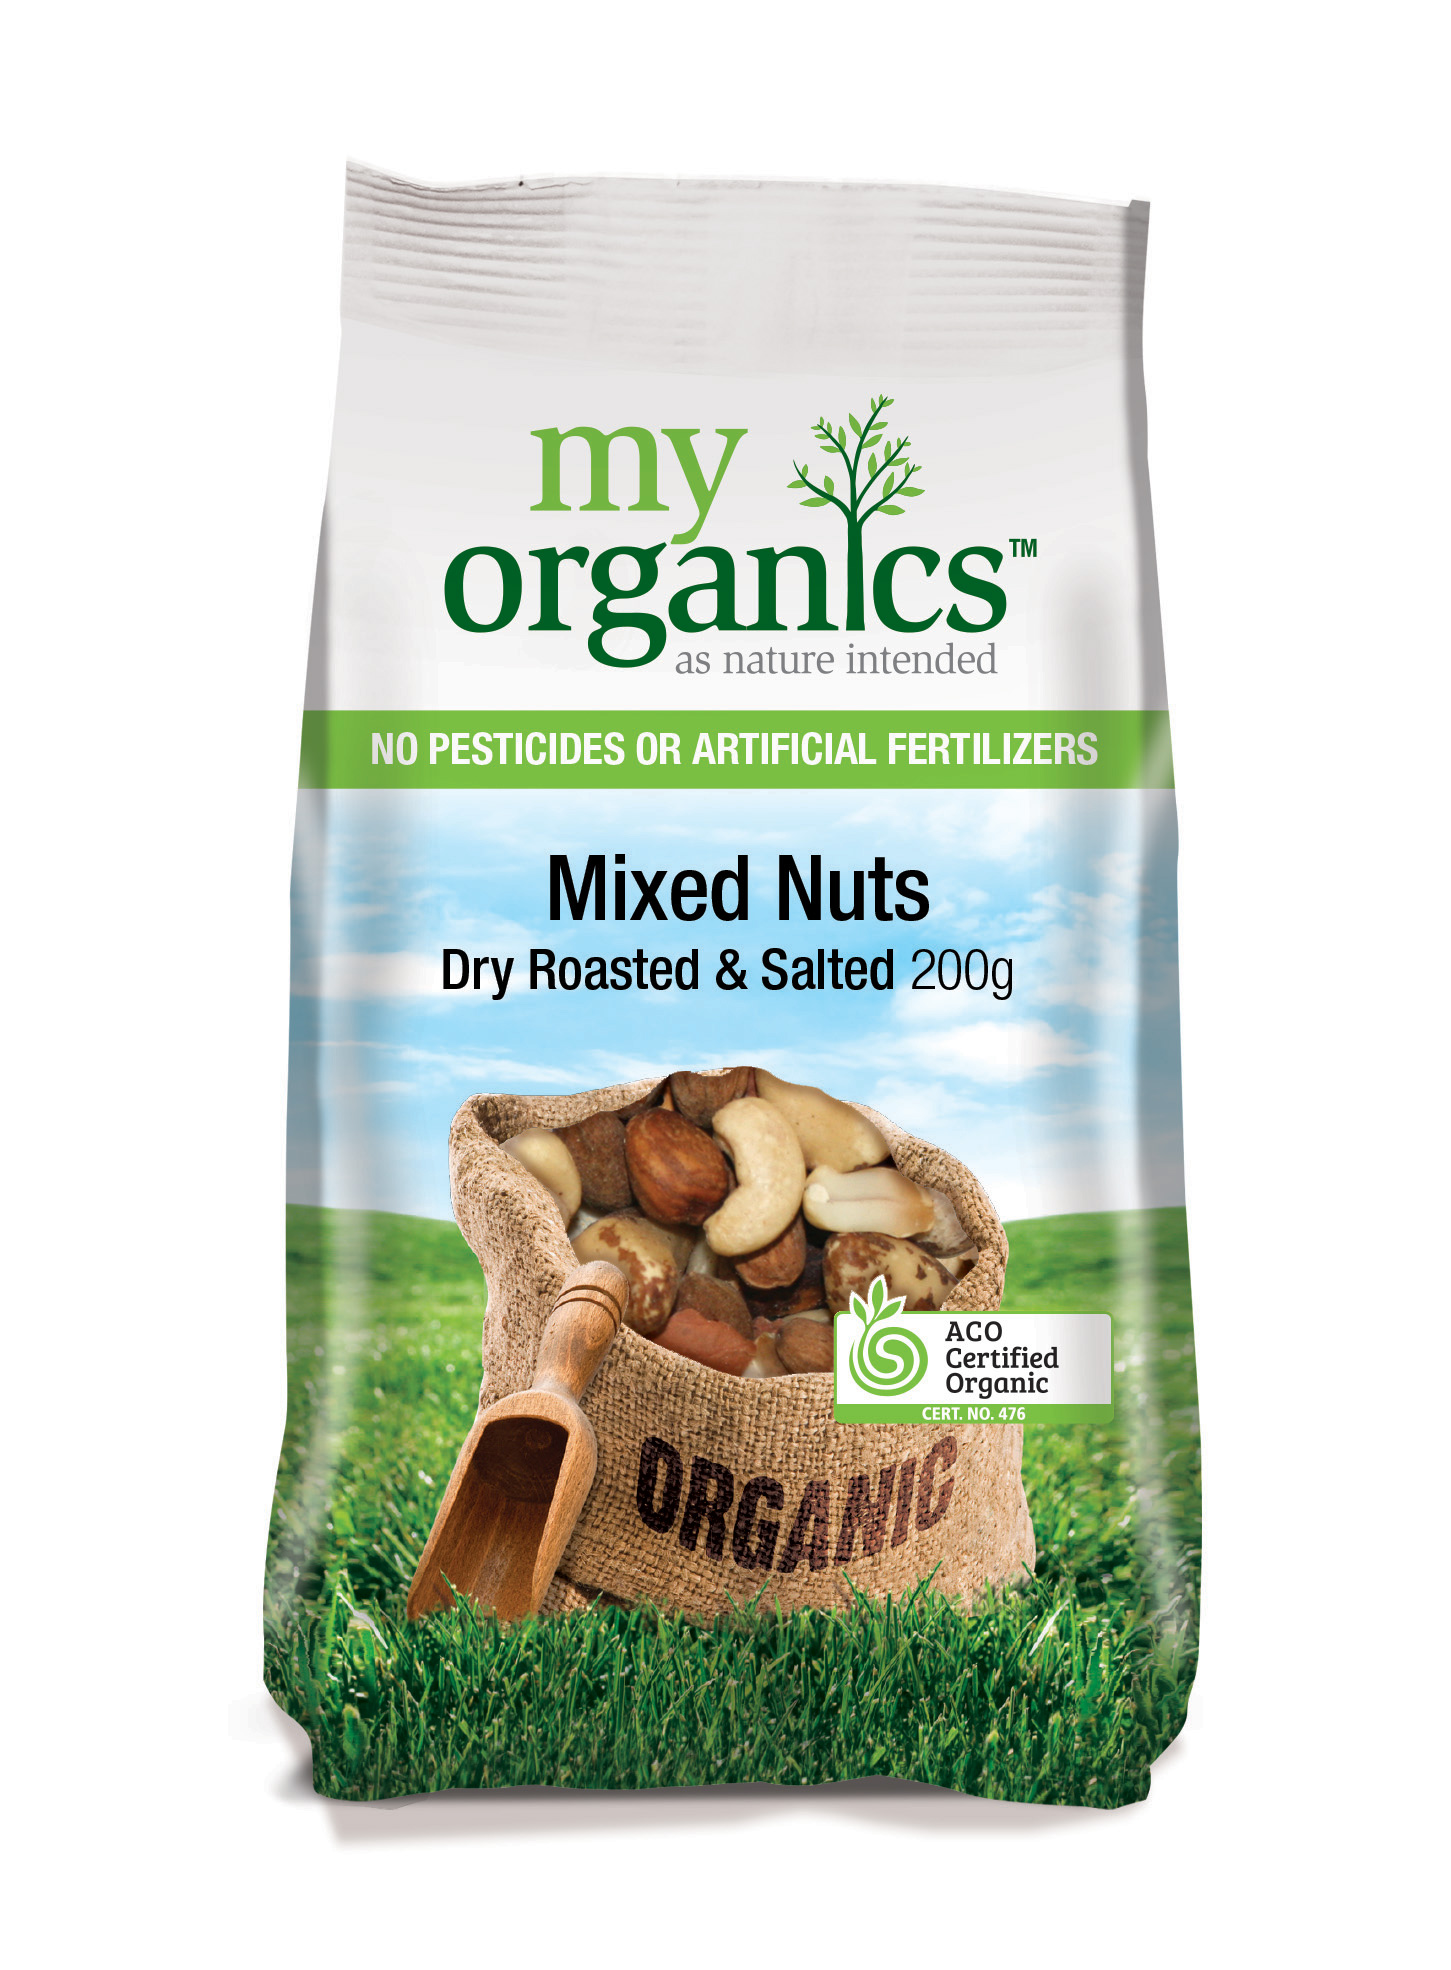 Mixed Nuts Dry Roasted & Salted